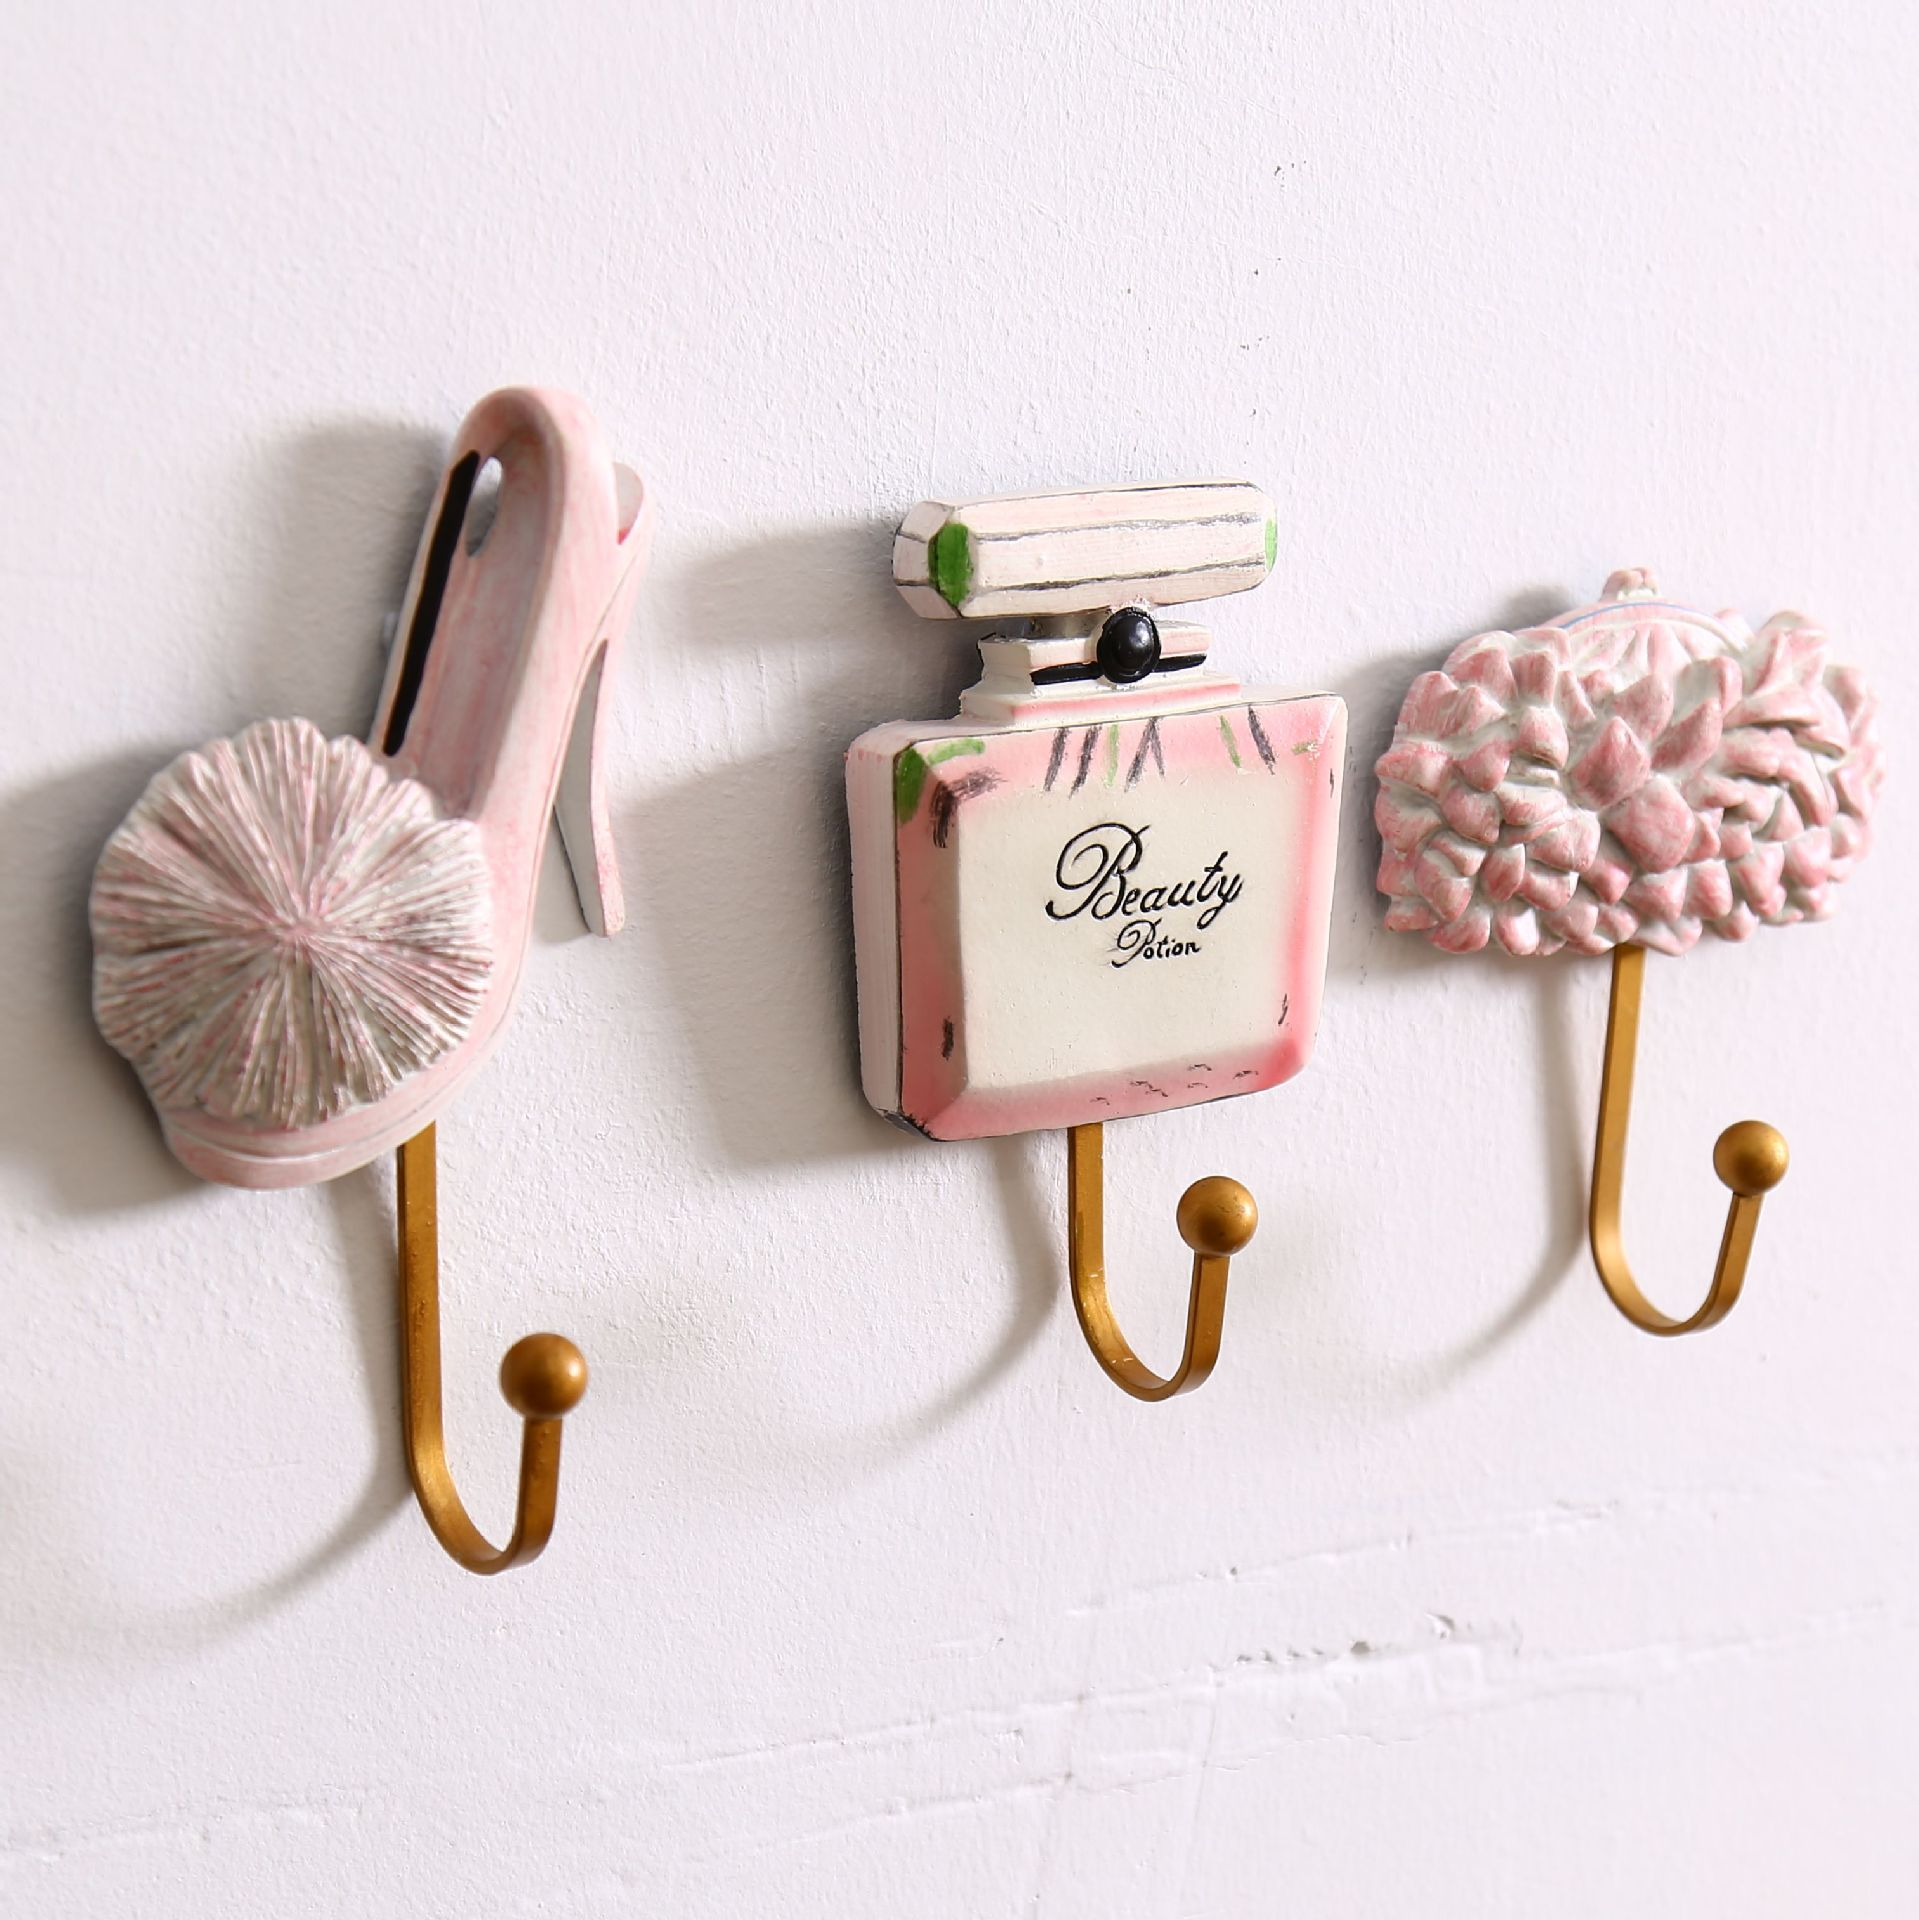 Hot Selling Home Decorative Creative Resin Coat Hooks Pink Wall Hook Bag  Room Craft Gift Bathroom